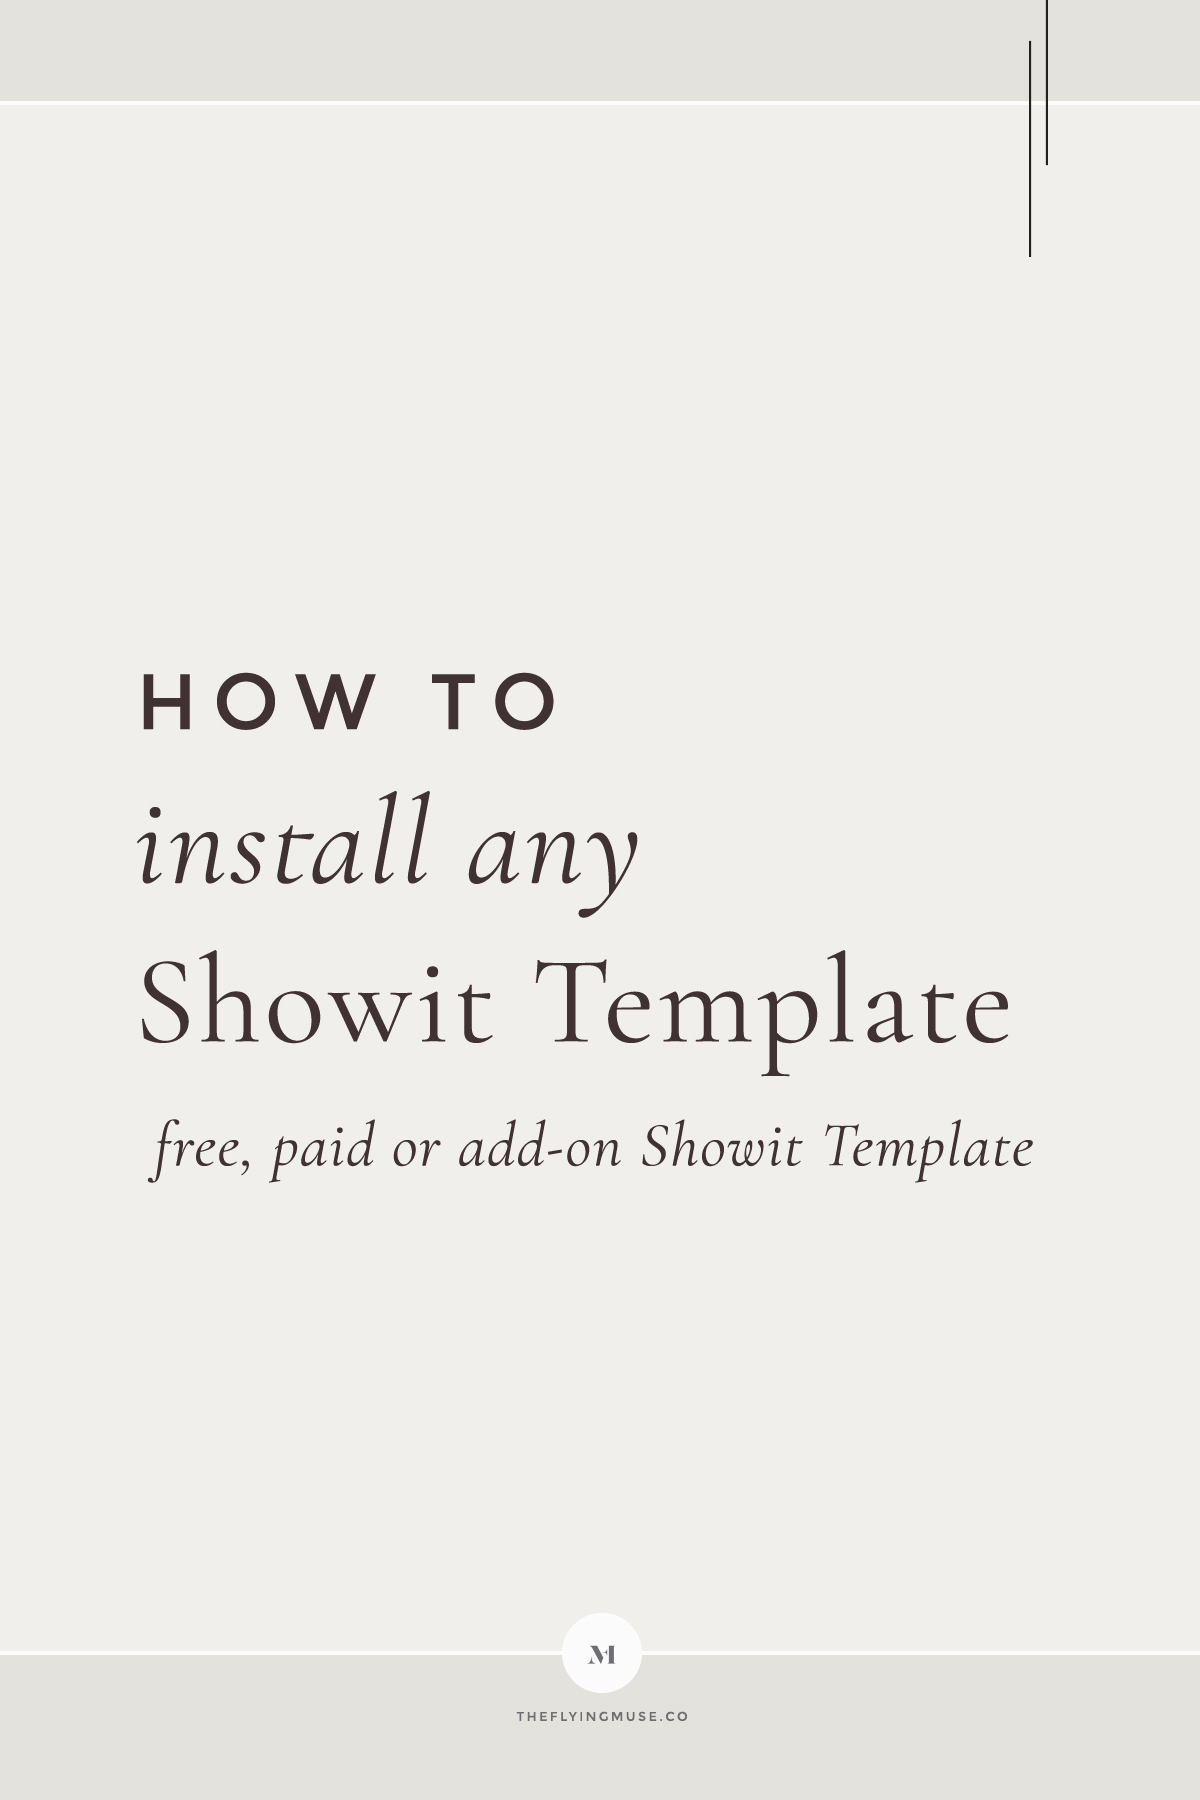 How to install Free, Premium, Add-on or Any Showit Templates